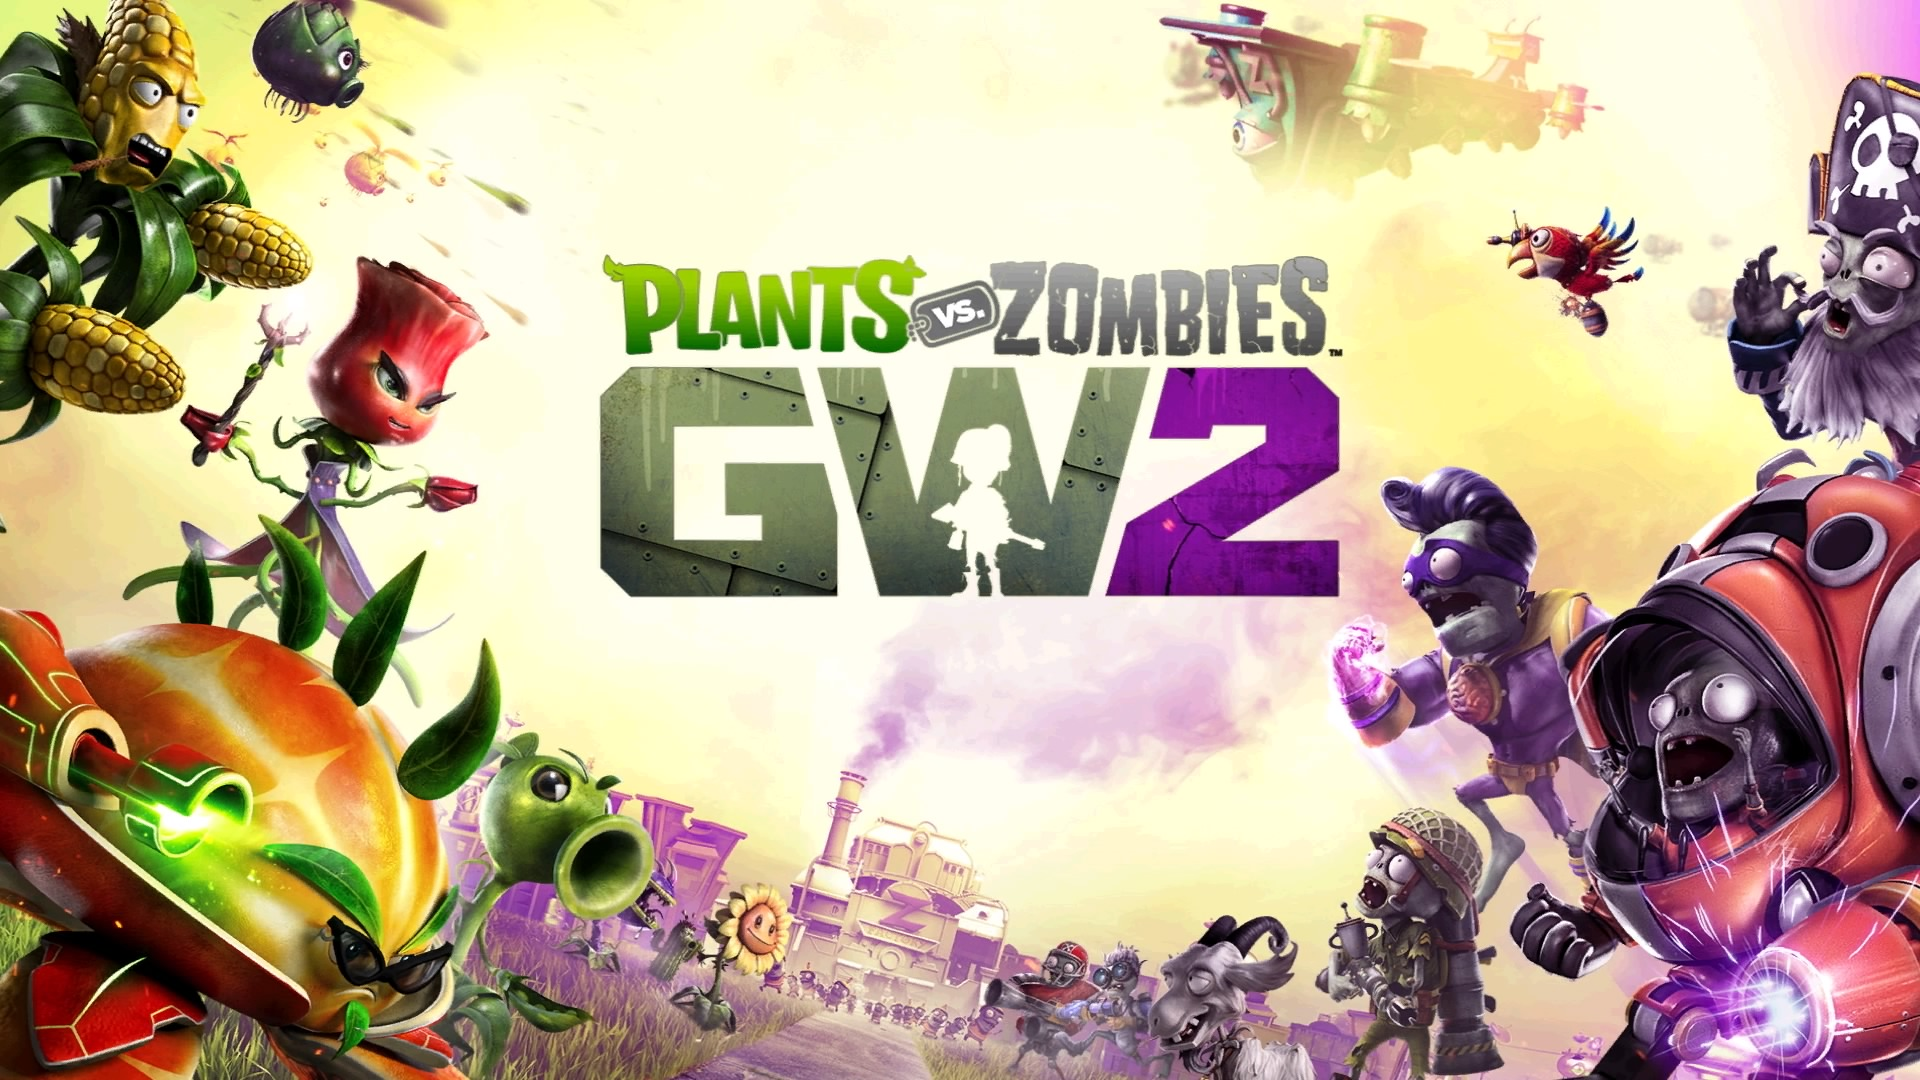 Had Enough Of The Bog Standard Sunflower And Boring Old Peashooter? You  Need To Drop Some Bling Into Your Garden. Plants Vs Zombies Garden Warfare  ...